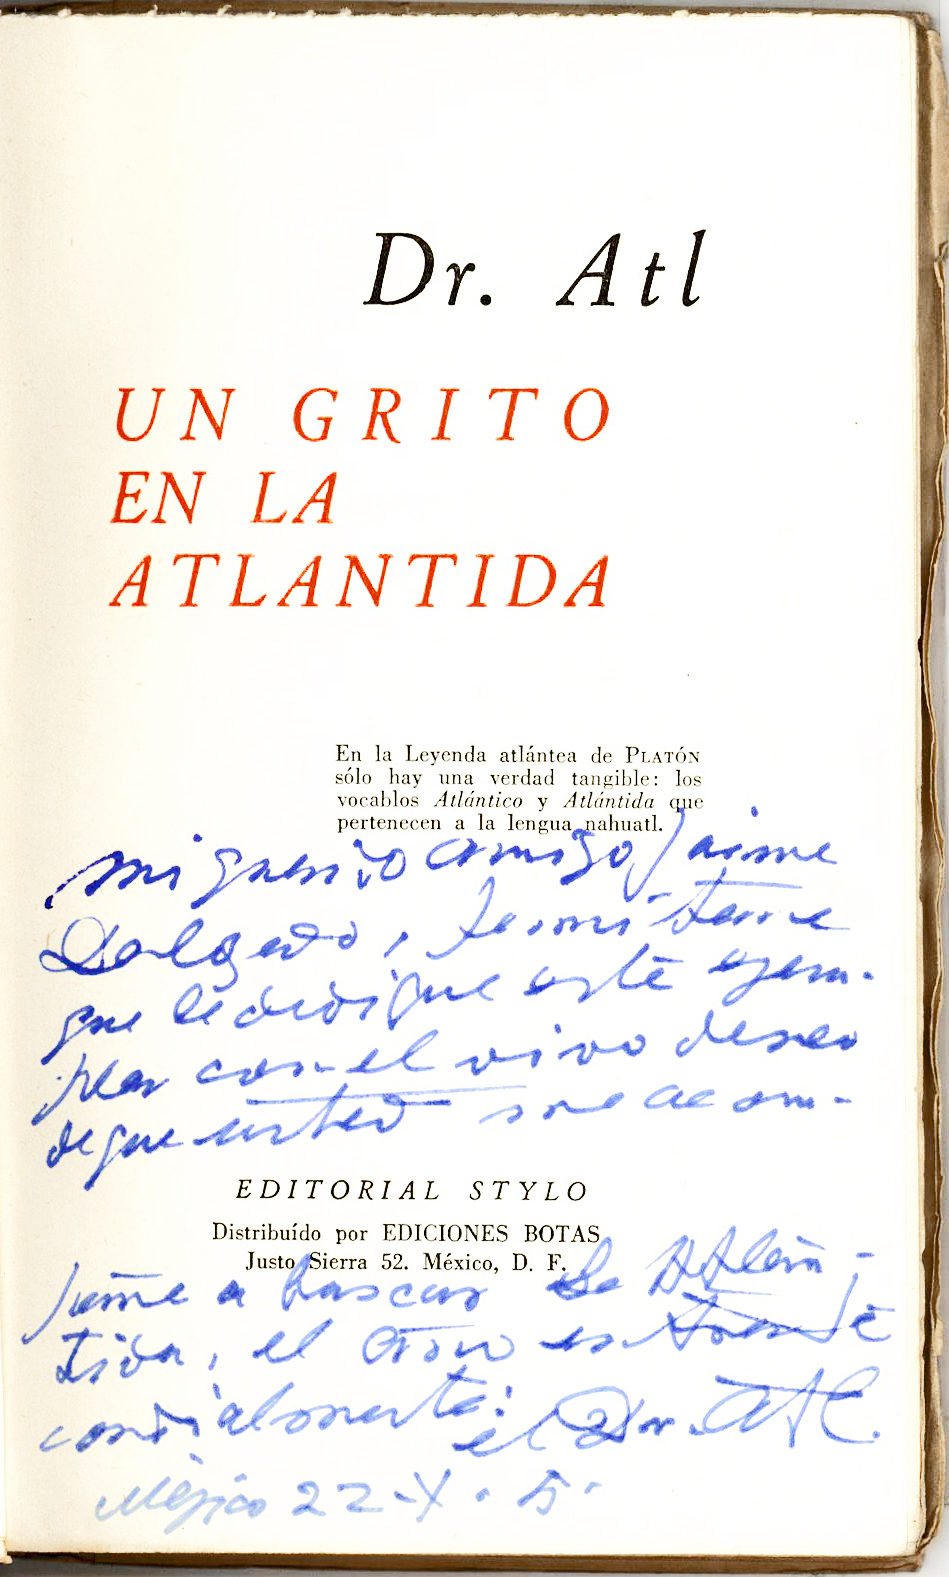 A Book Signed by the Author Whose Work Inspired John Steinbeck's The Pearl